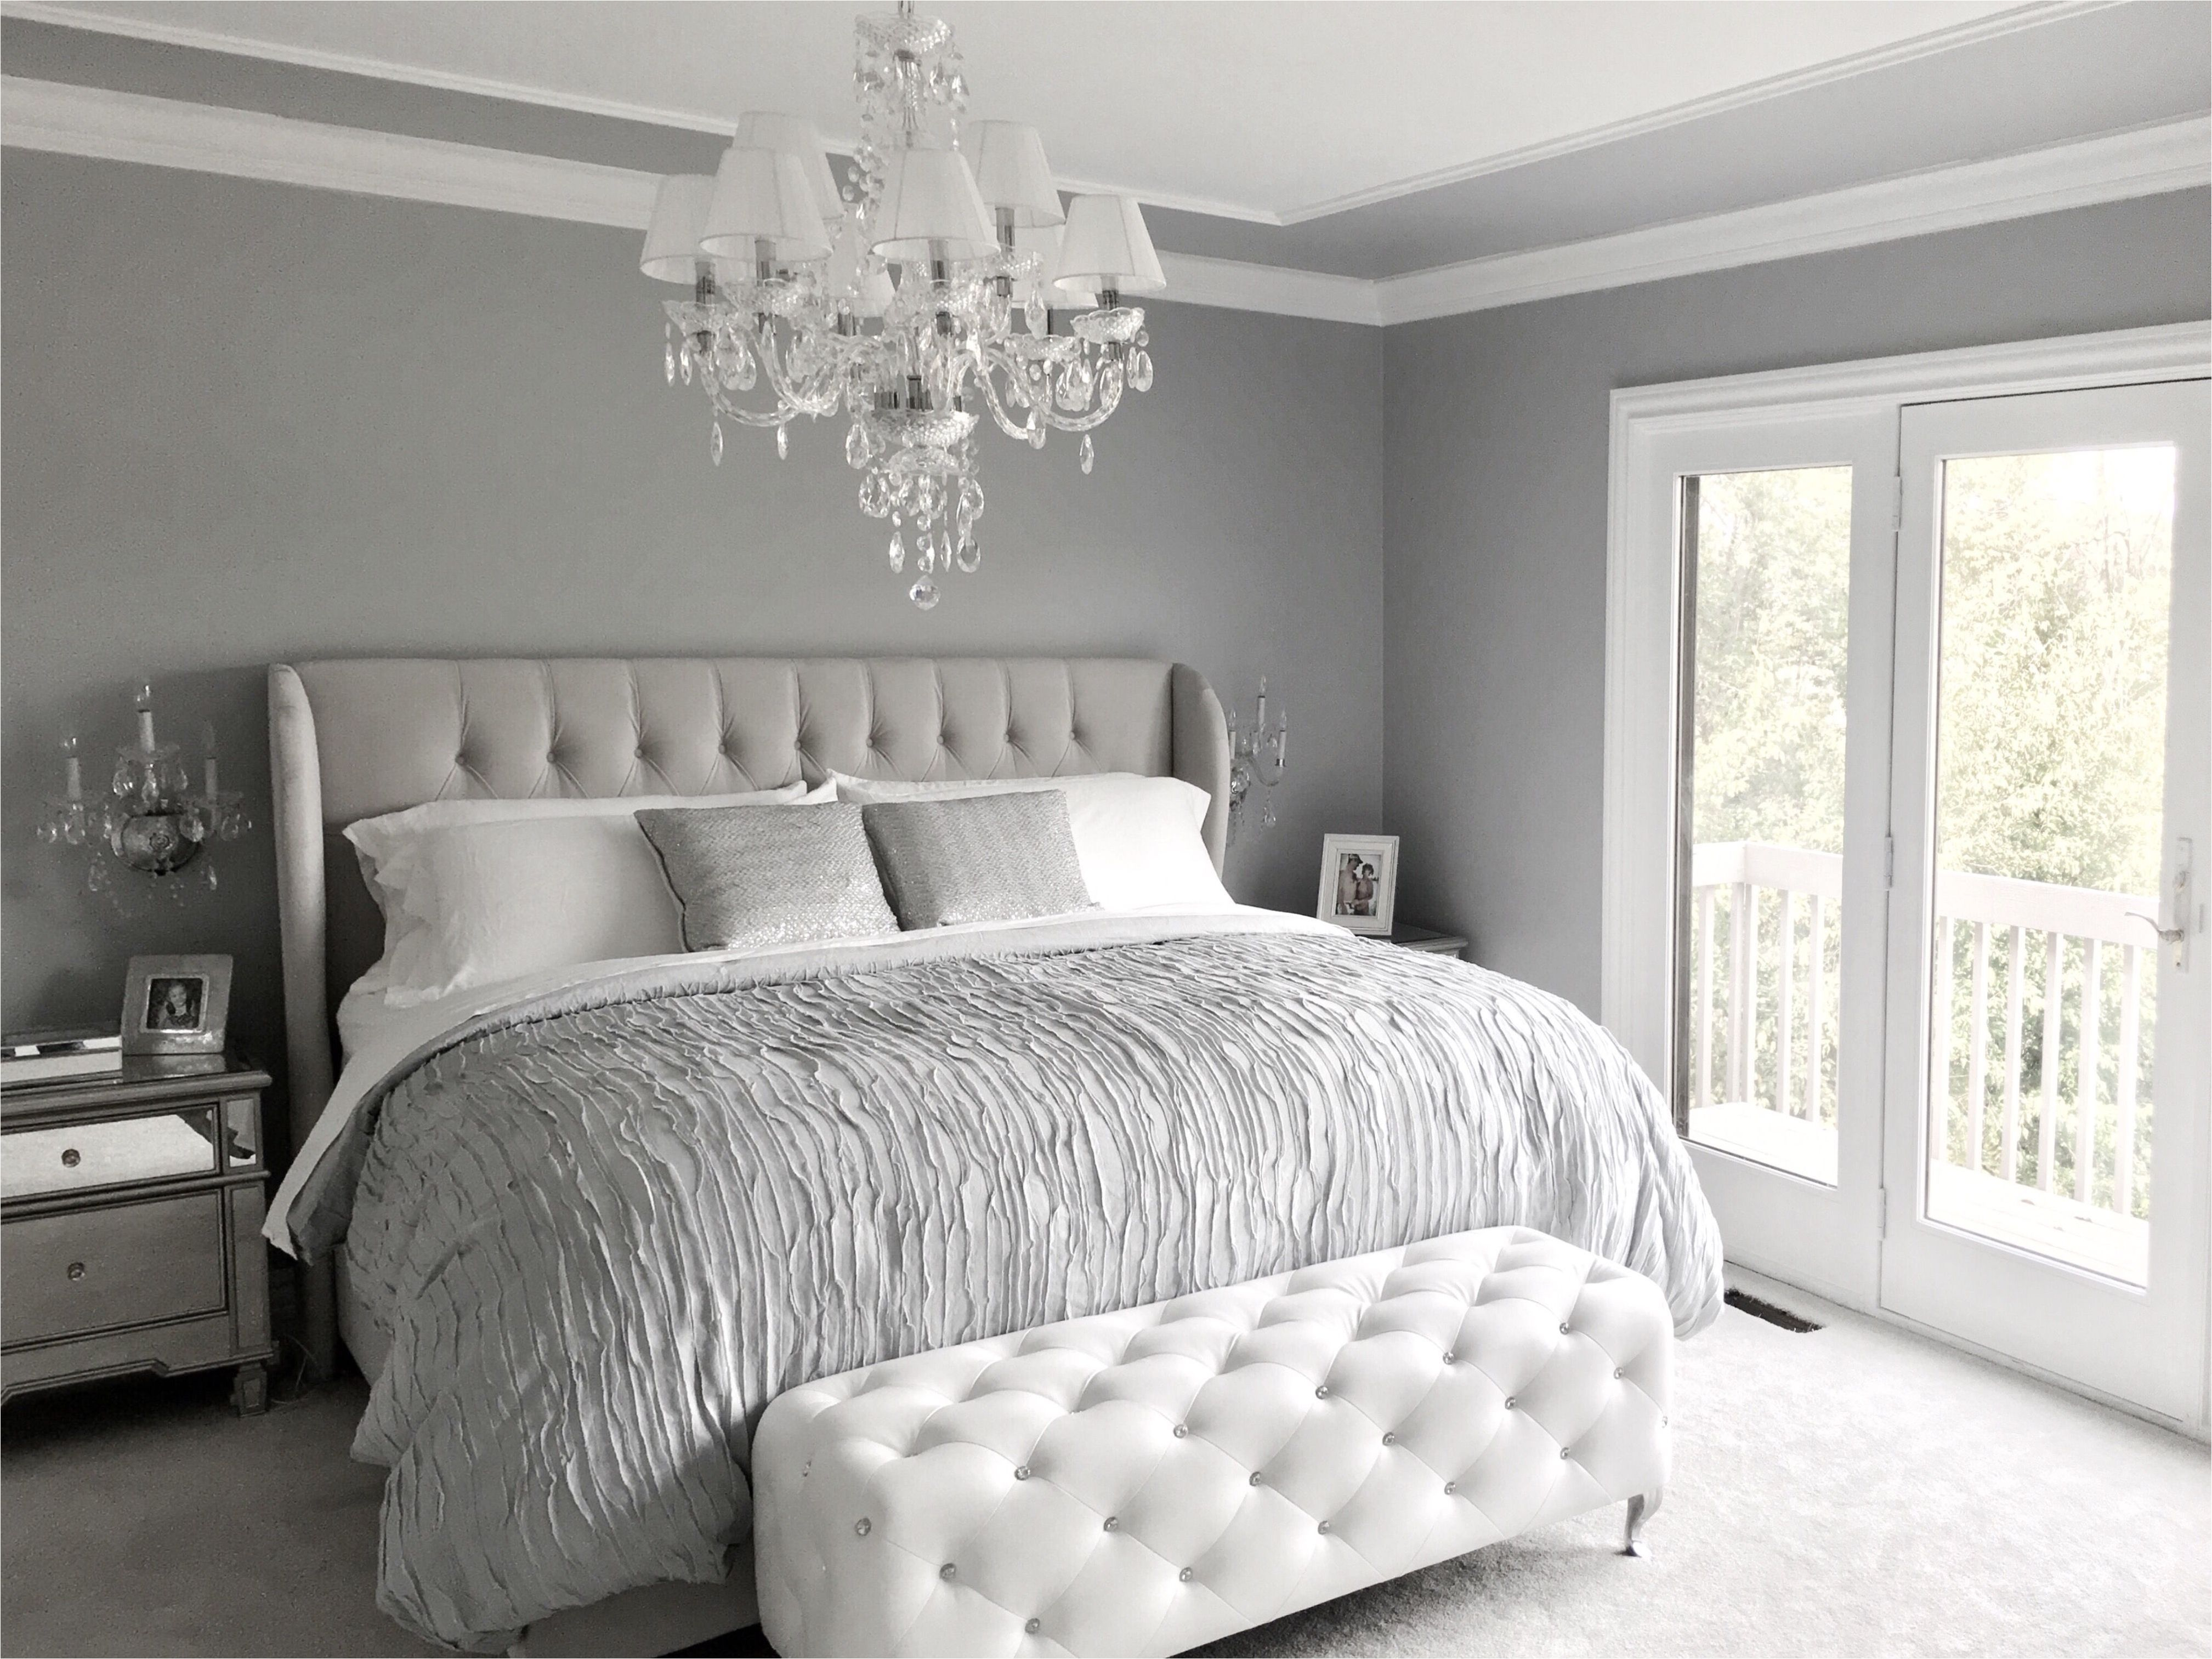 Bedroom furniture ideas remodel and build your ideal boudoir